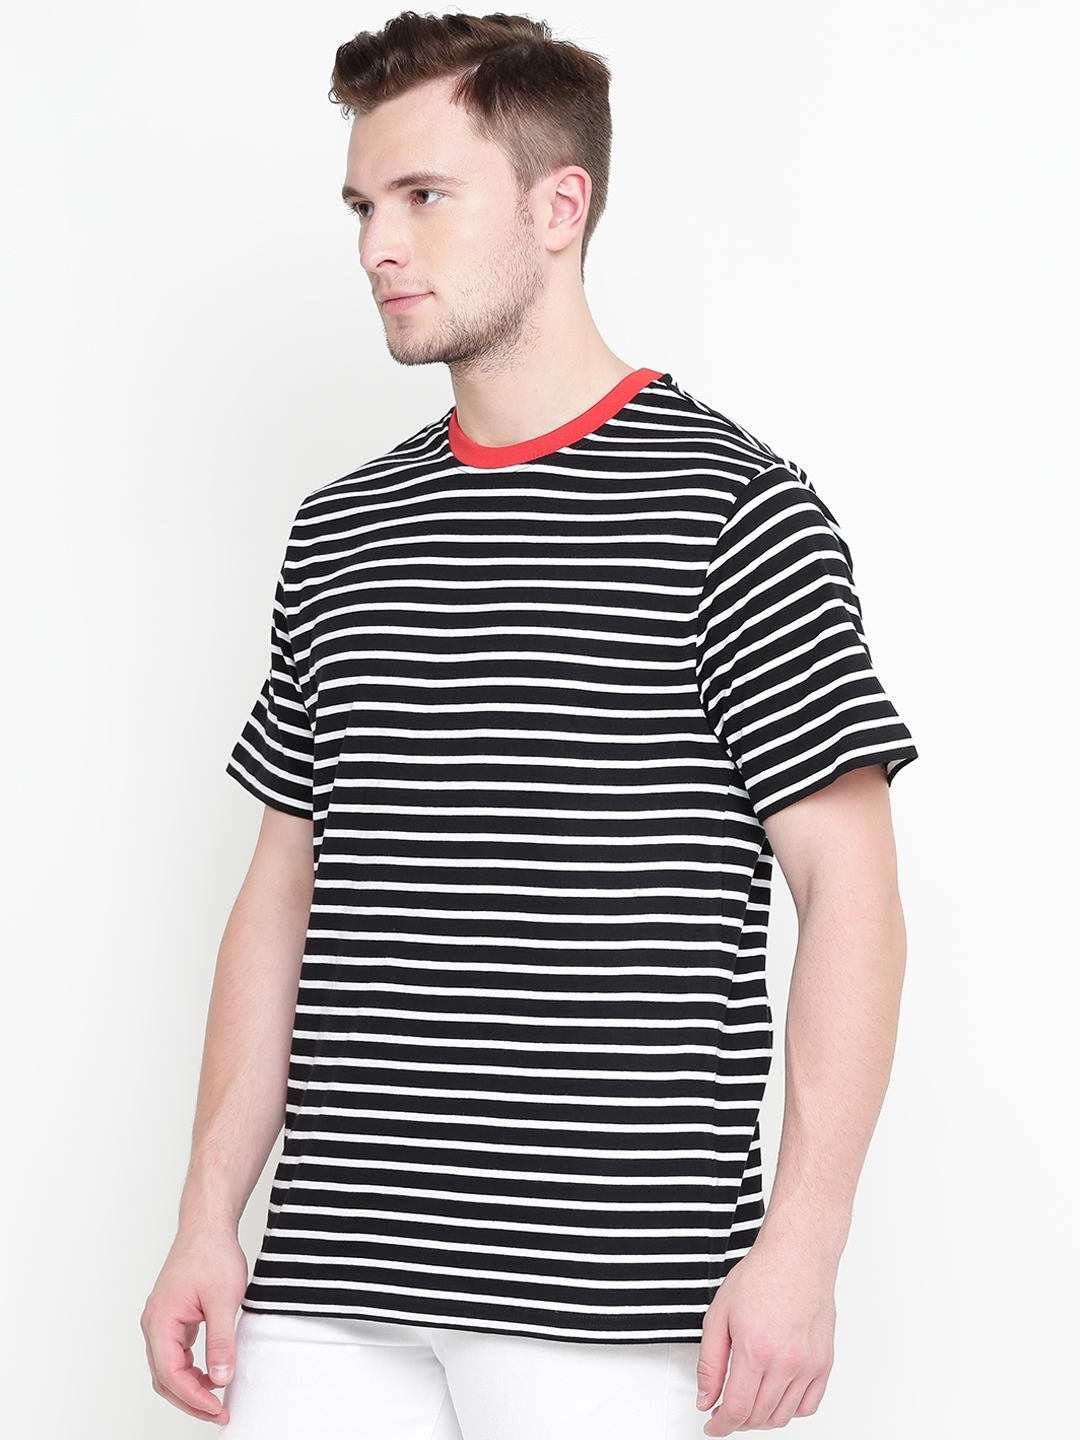 a3f91bc55eb1 Buy FOREVER 21 Men Black & White Striped Round Neck T Shirt ...